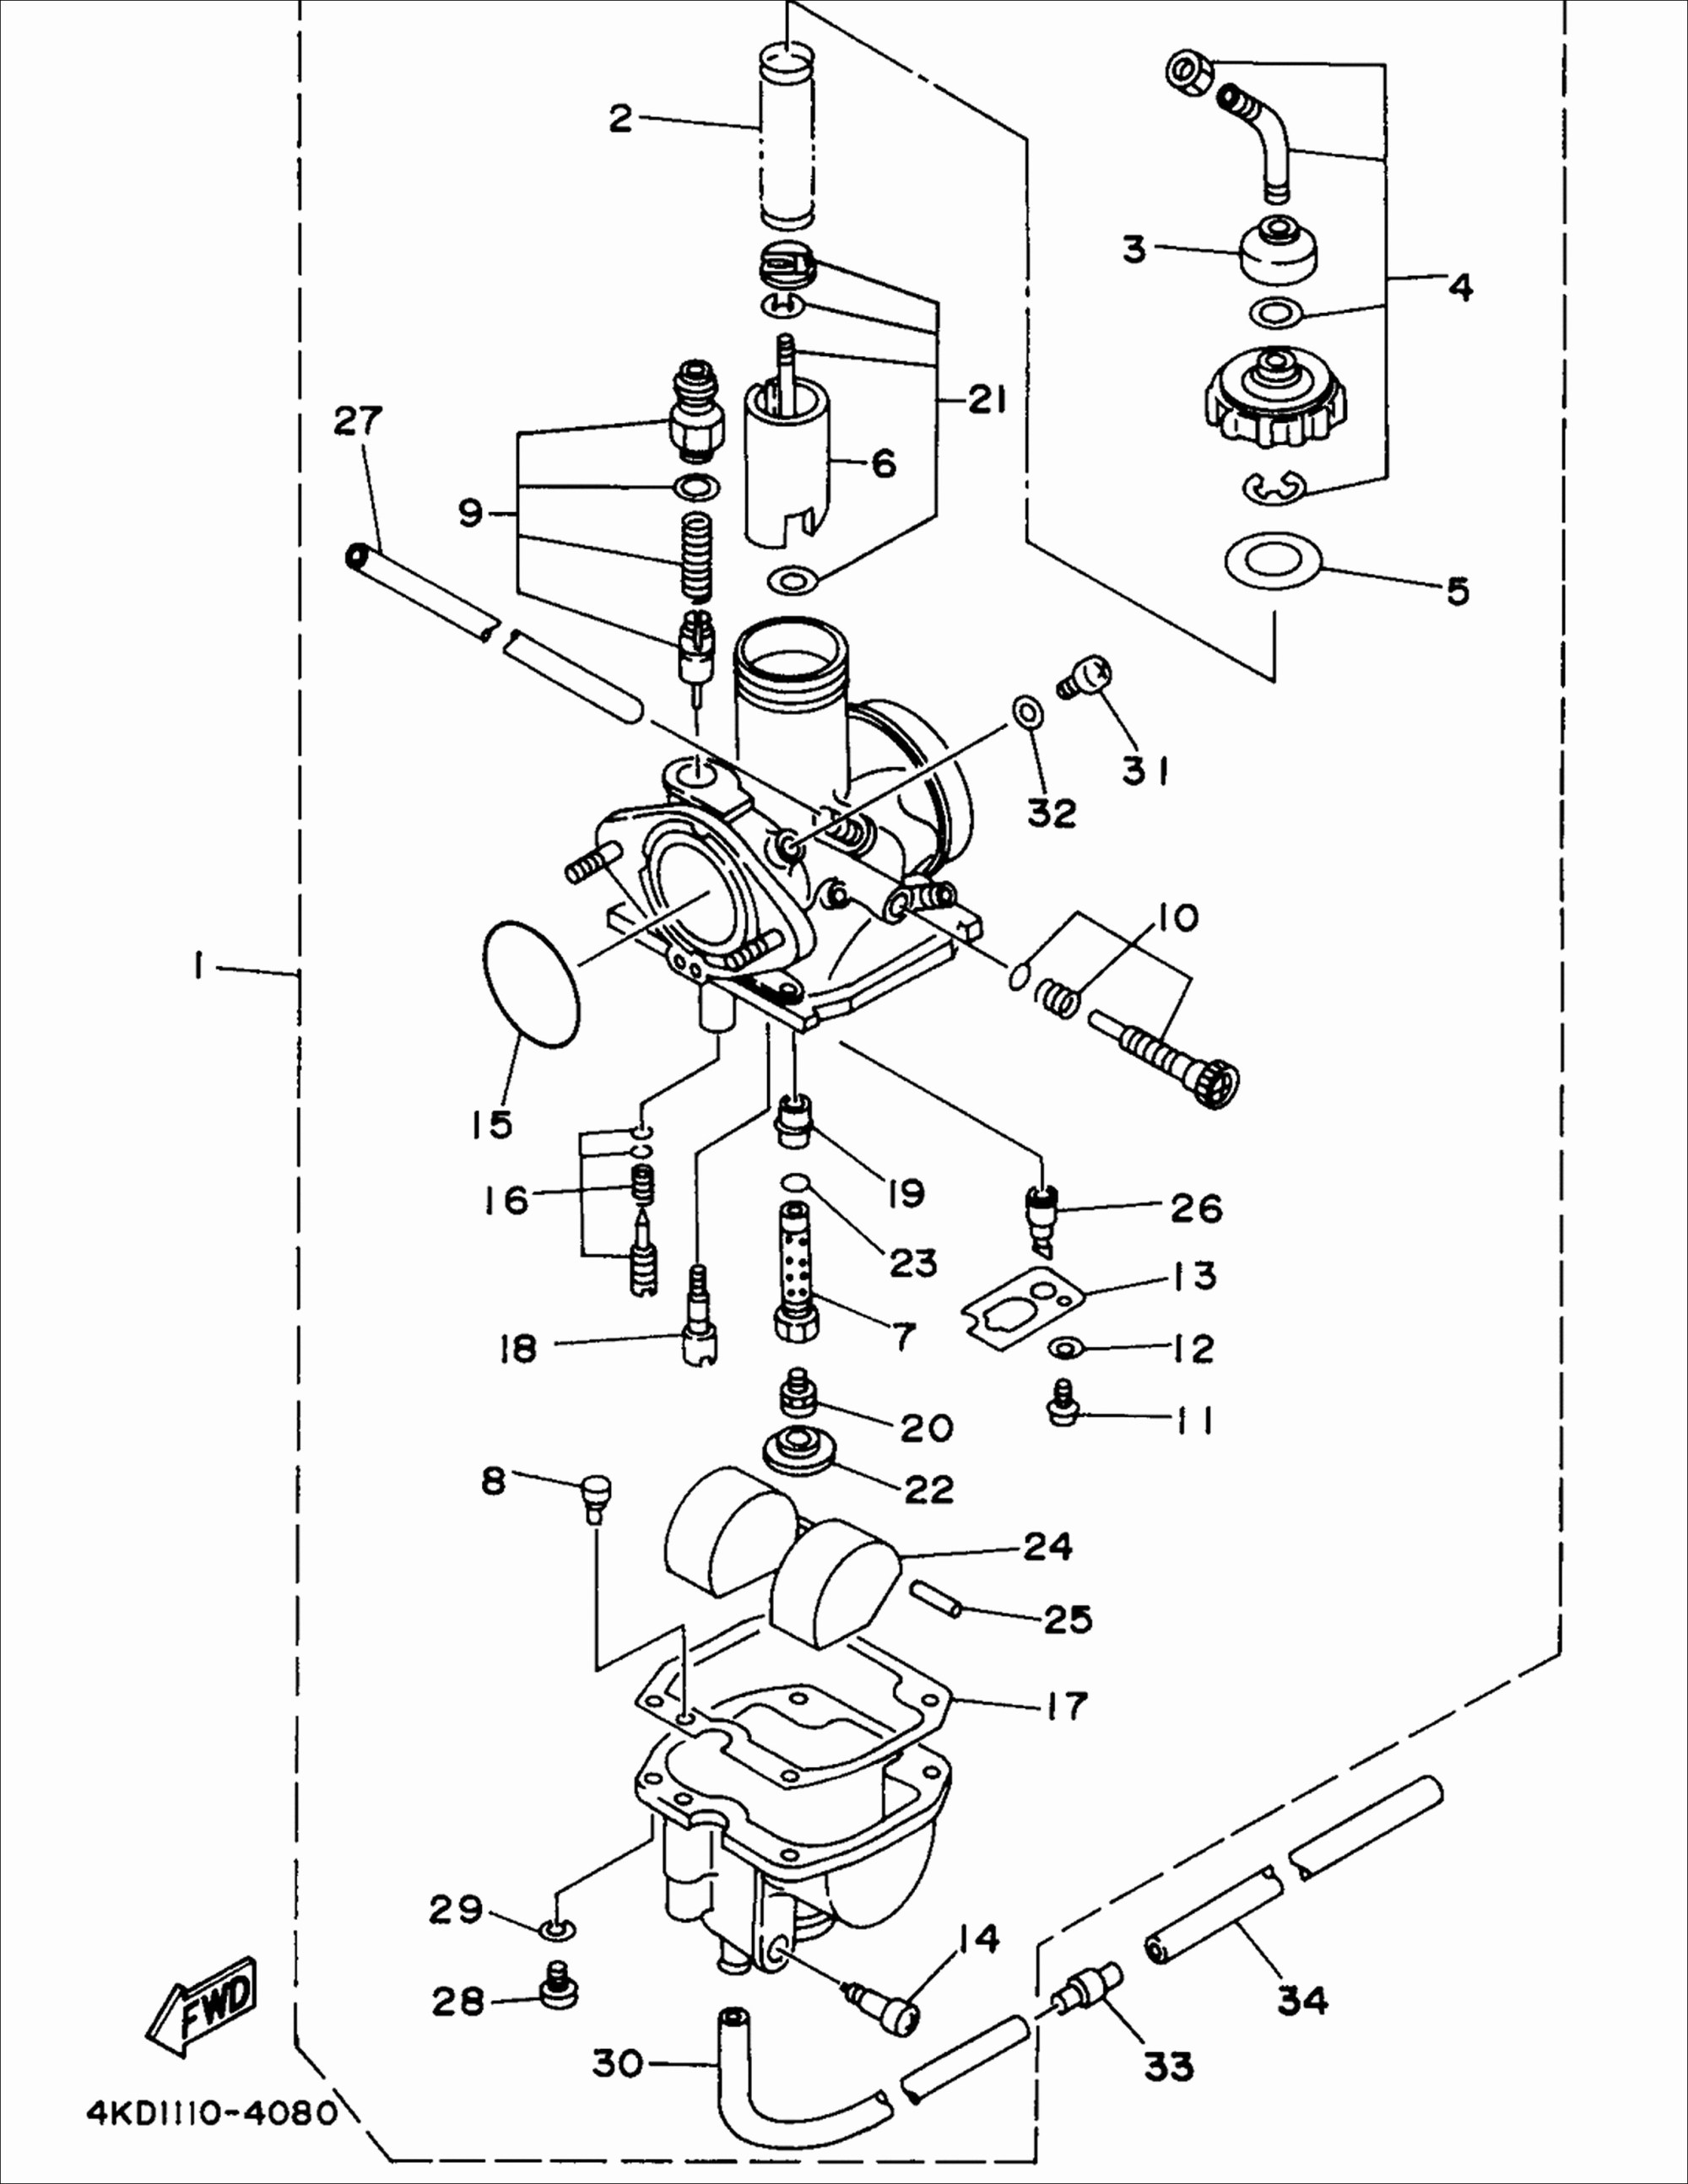 hight resolution of 1995 mitsubishi mirage wiring diagram automotive wiring diagrams rh mazhai net 2001 mitsubishi mirage wiring harness